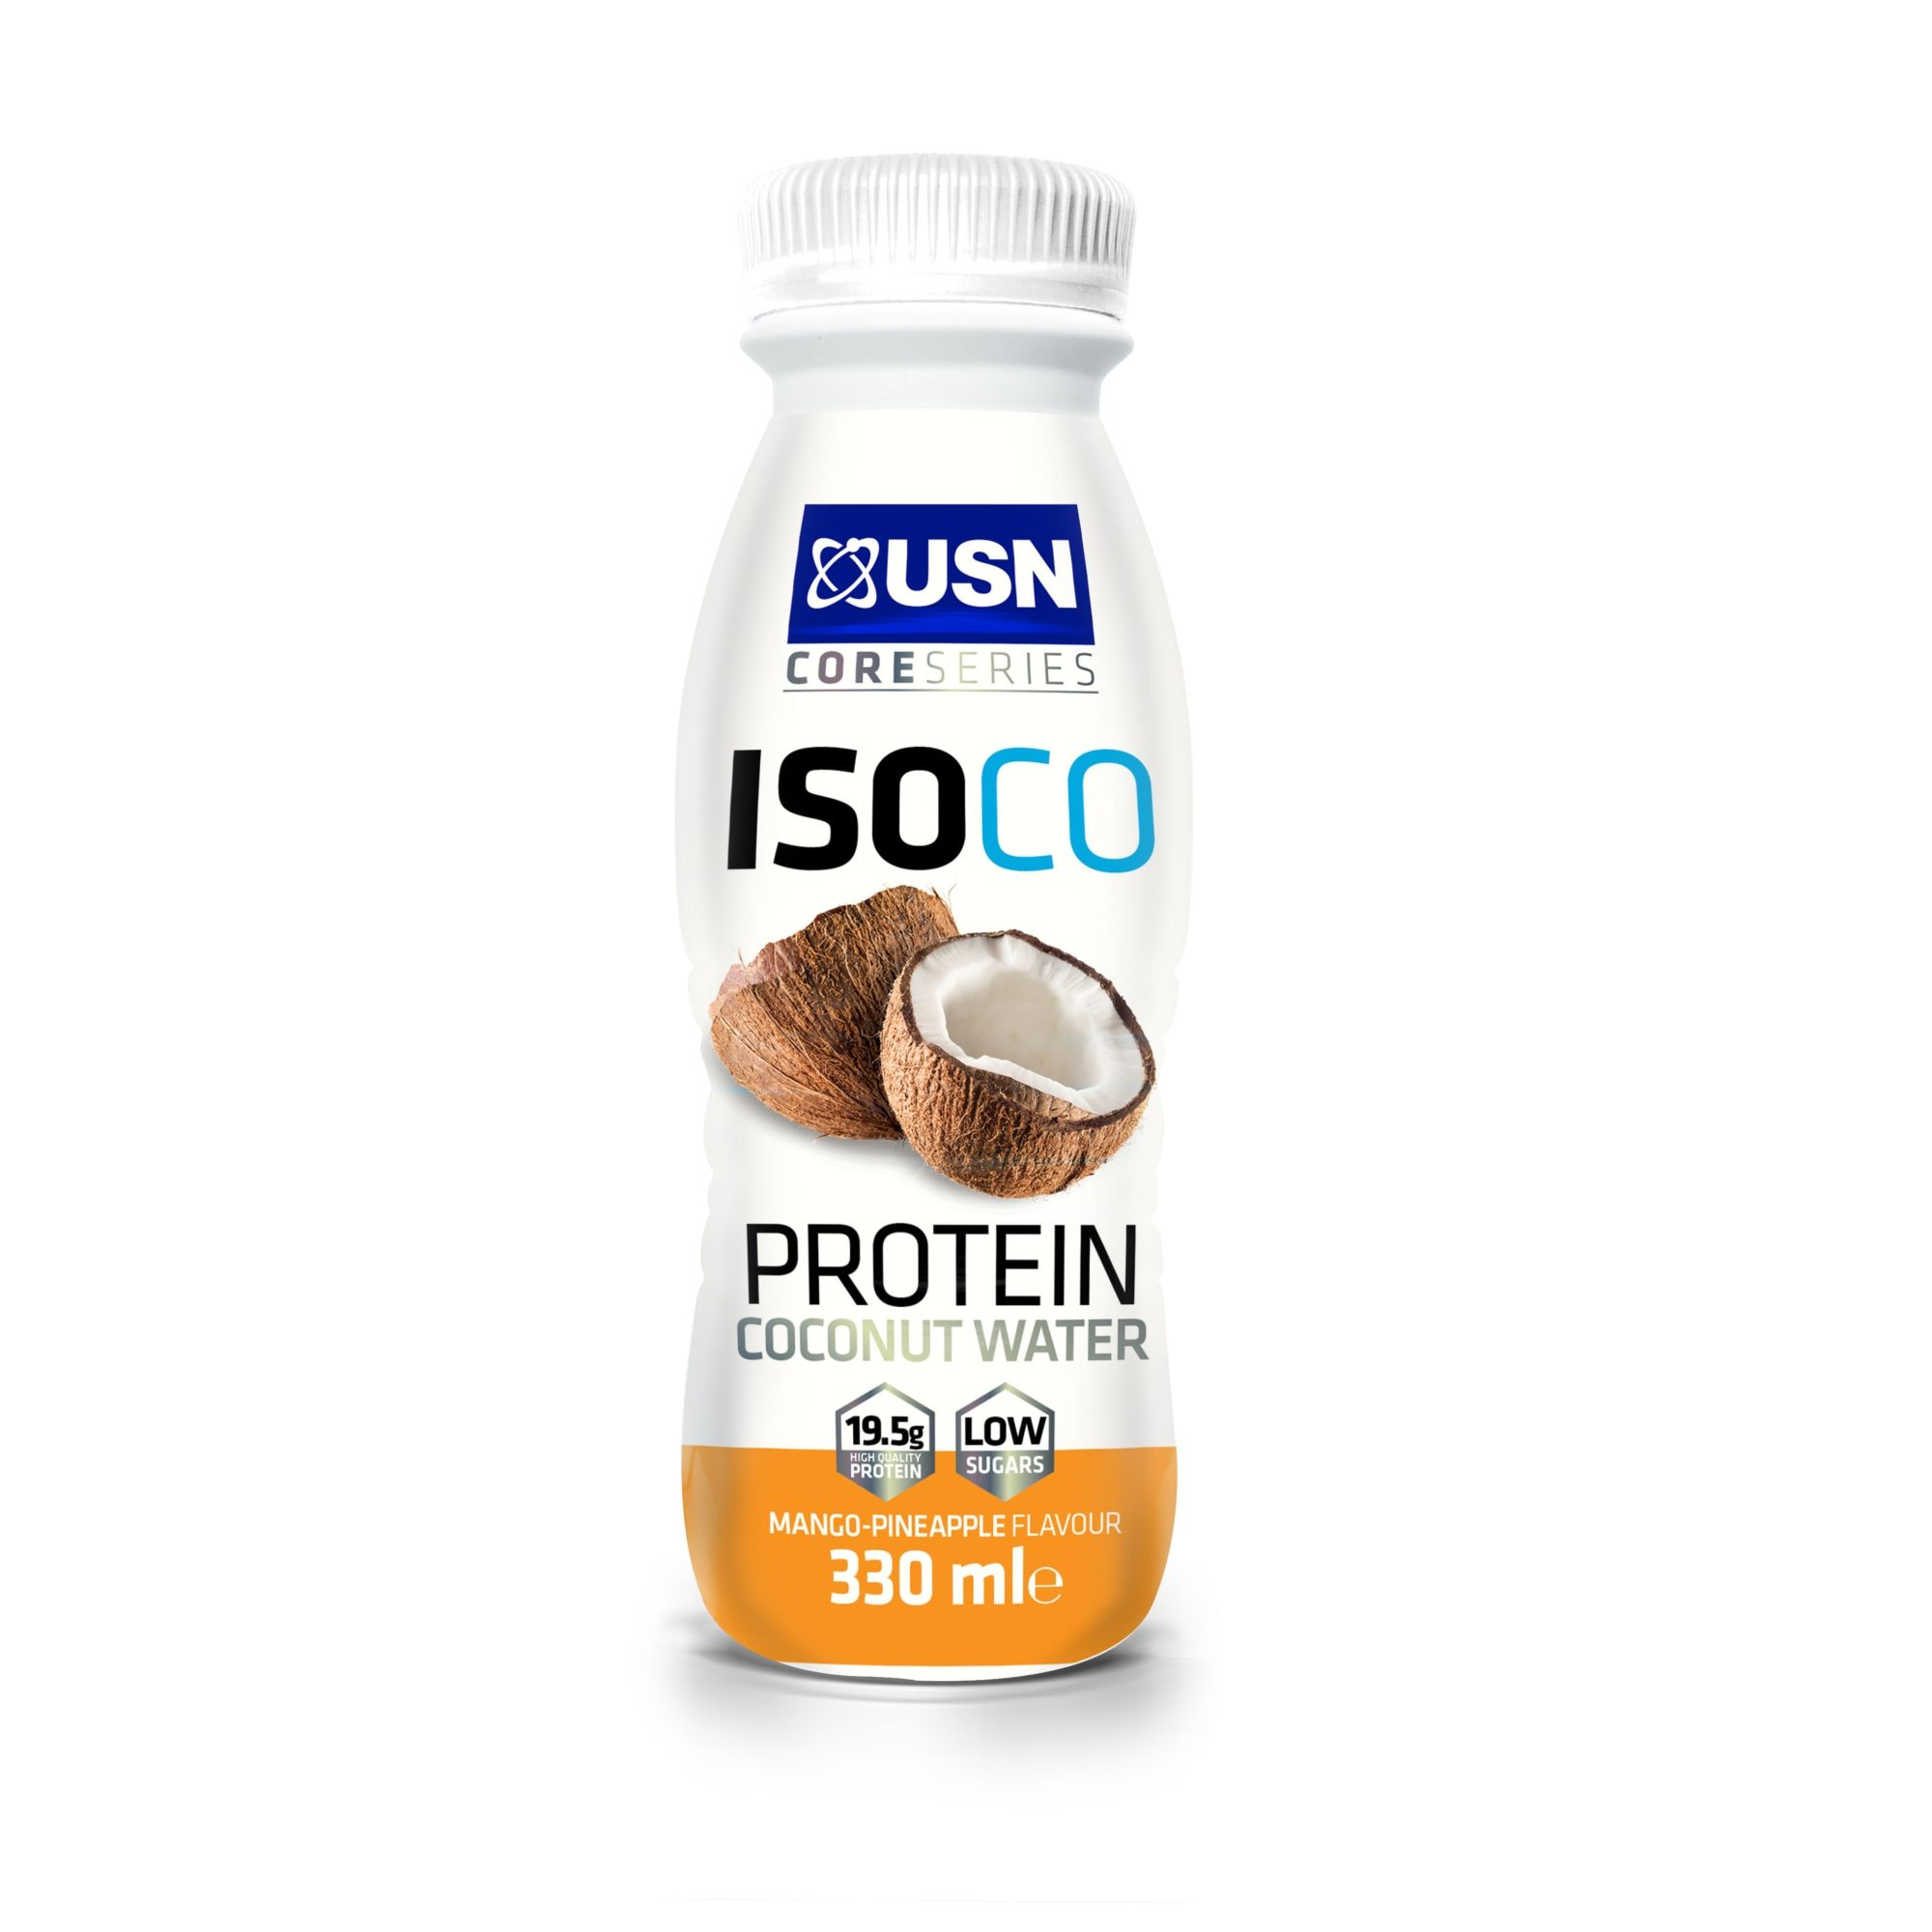 USN Isoco Protein Coconut Water USN (Ultimate Sports